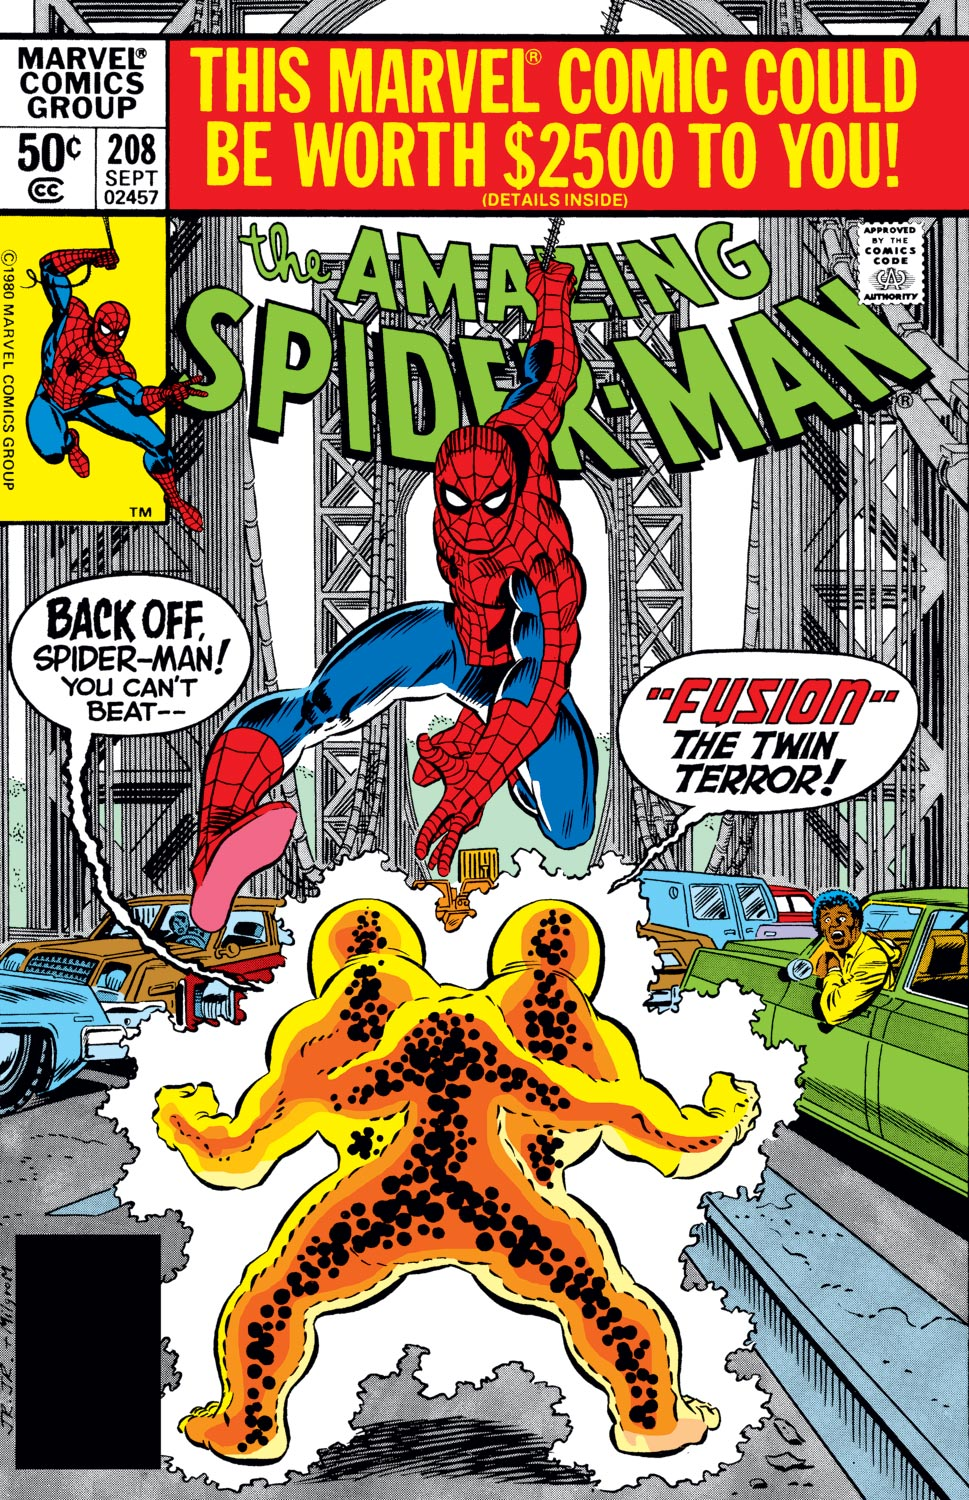 The Amazing Spider-Man (1963) #208